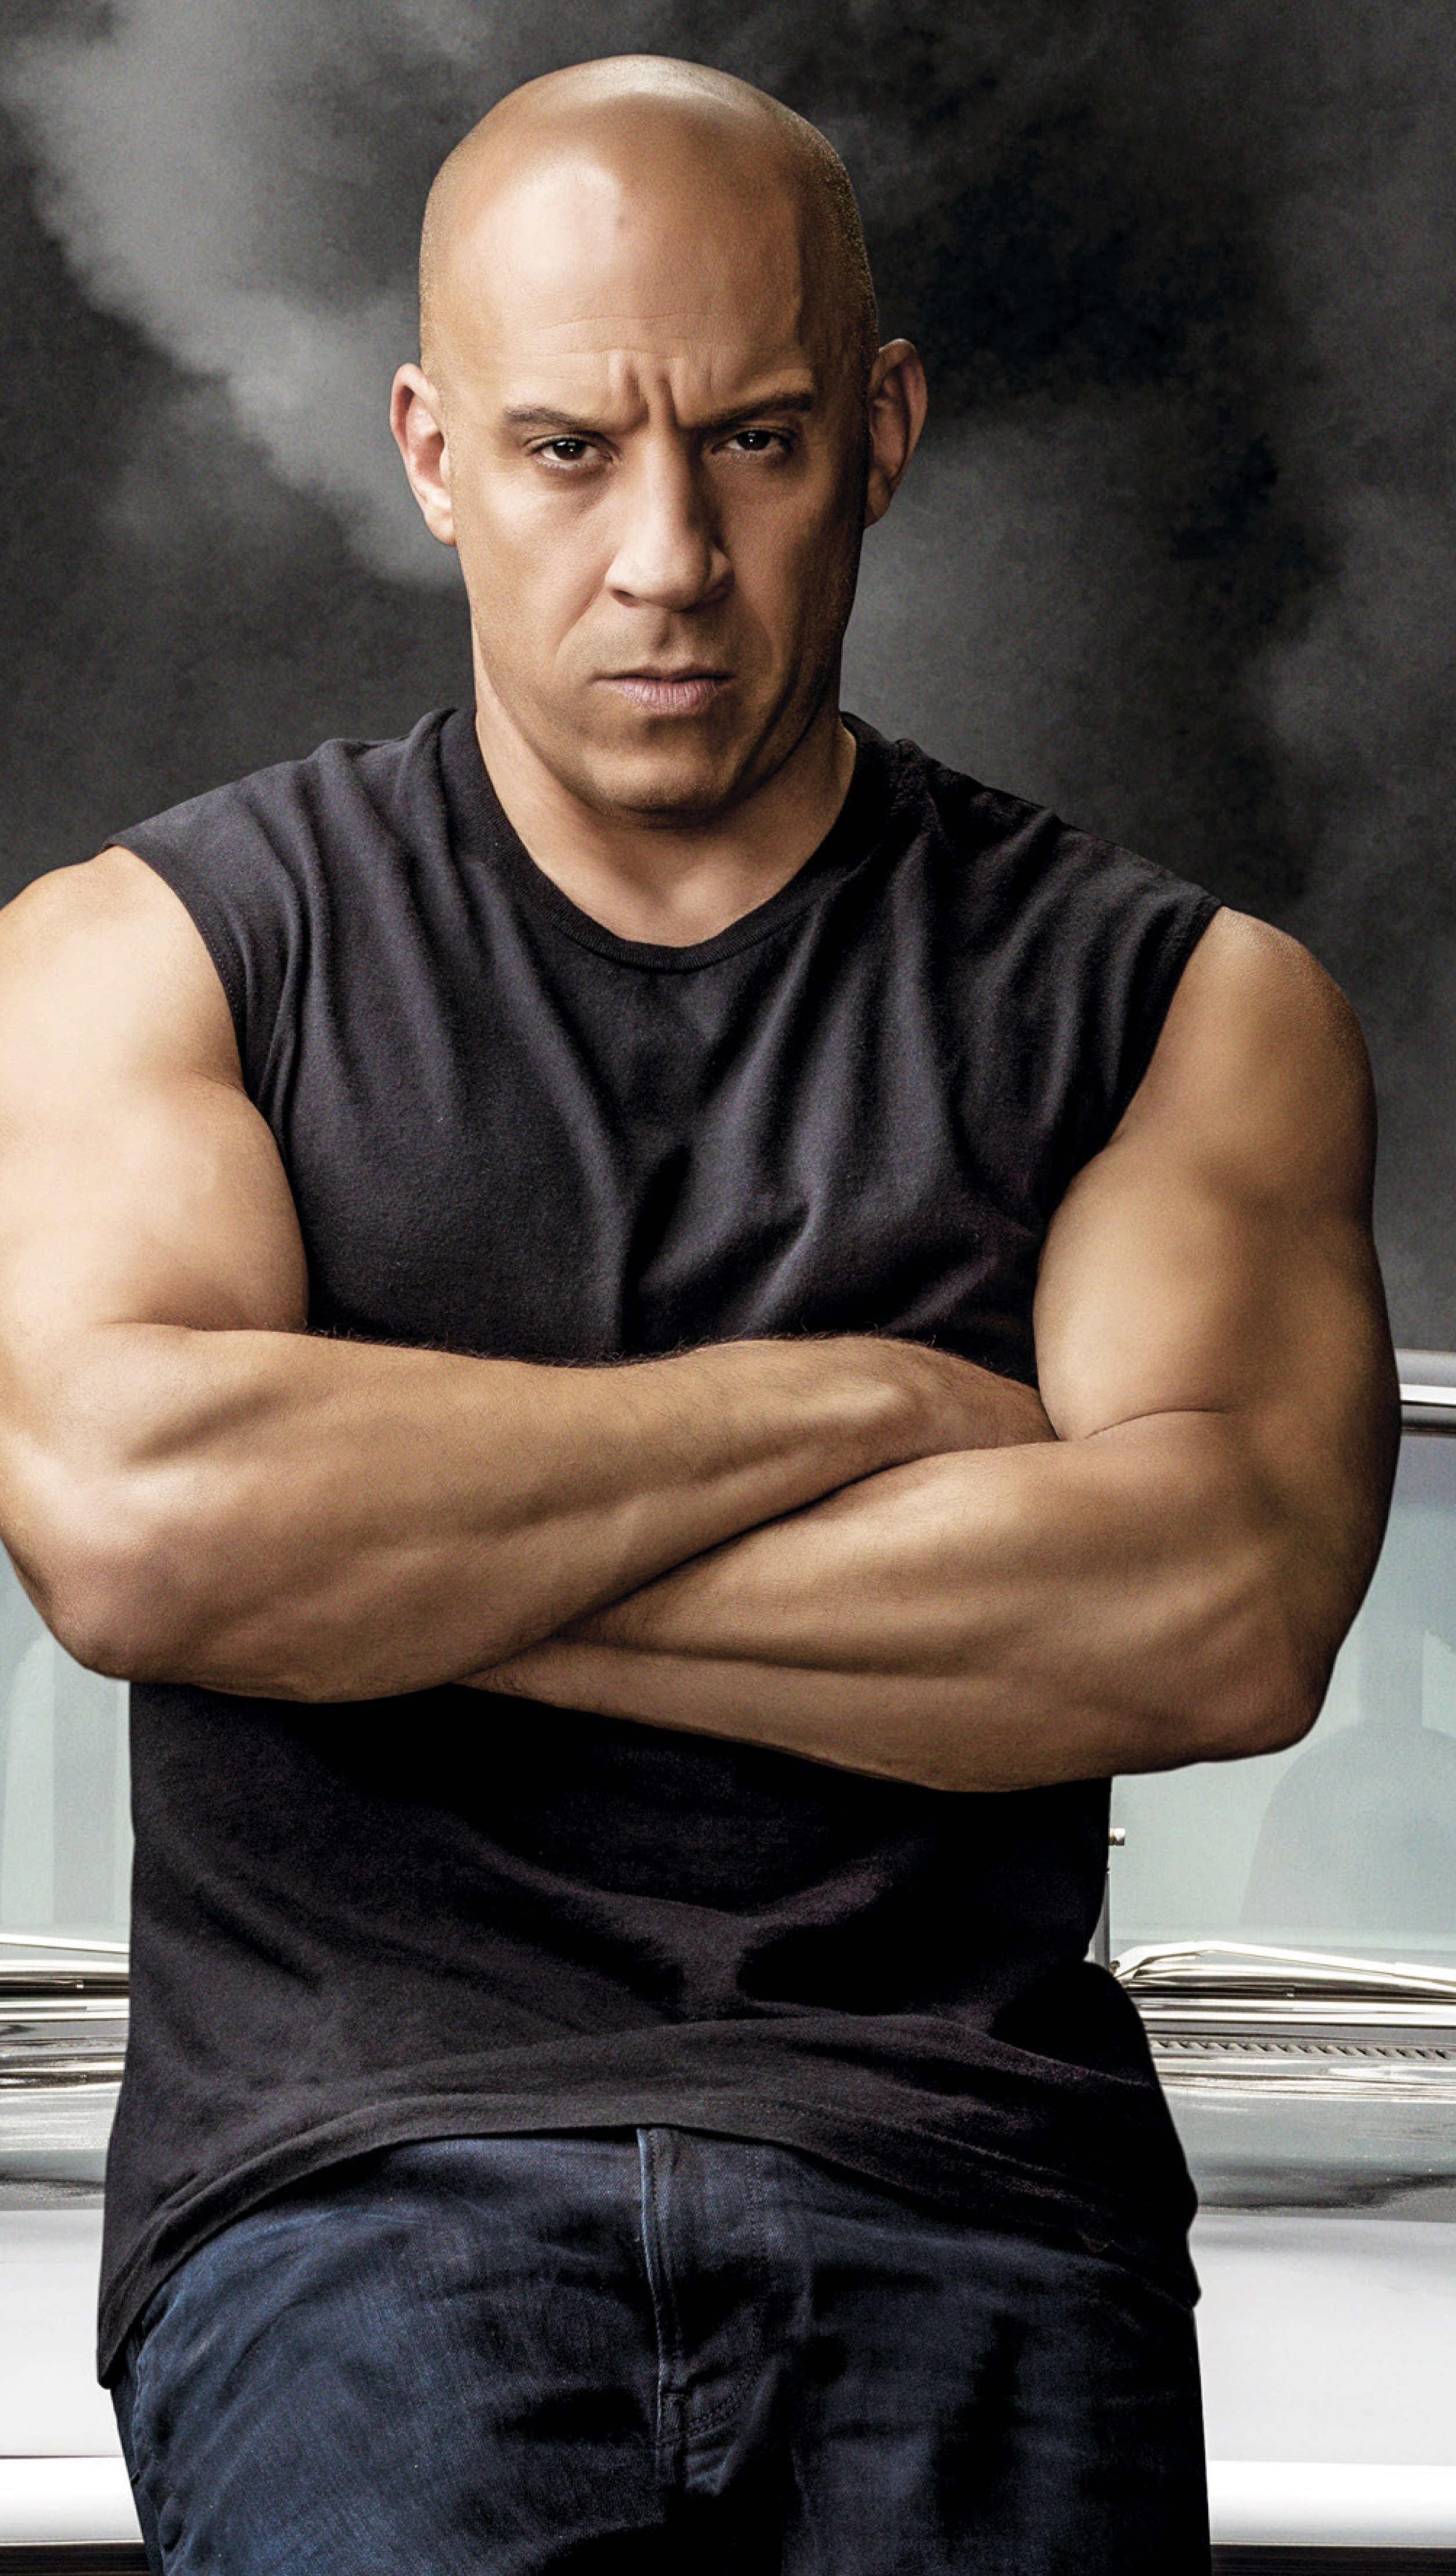 Wallpaper Vin Diesel  as Dominic Toretto in Fast and Furious 9 Vertical